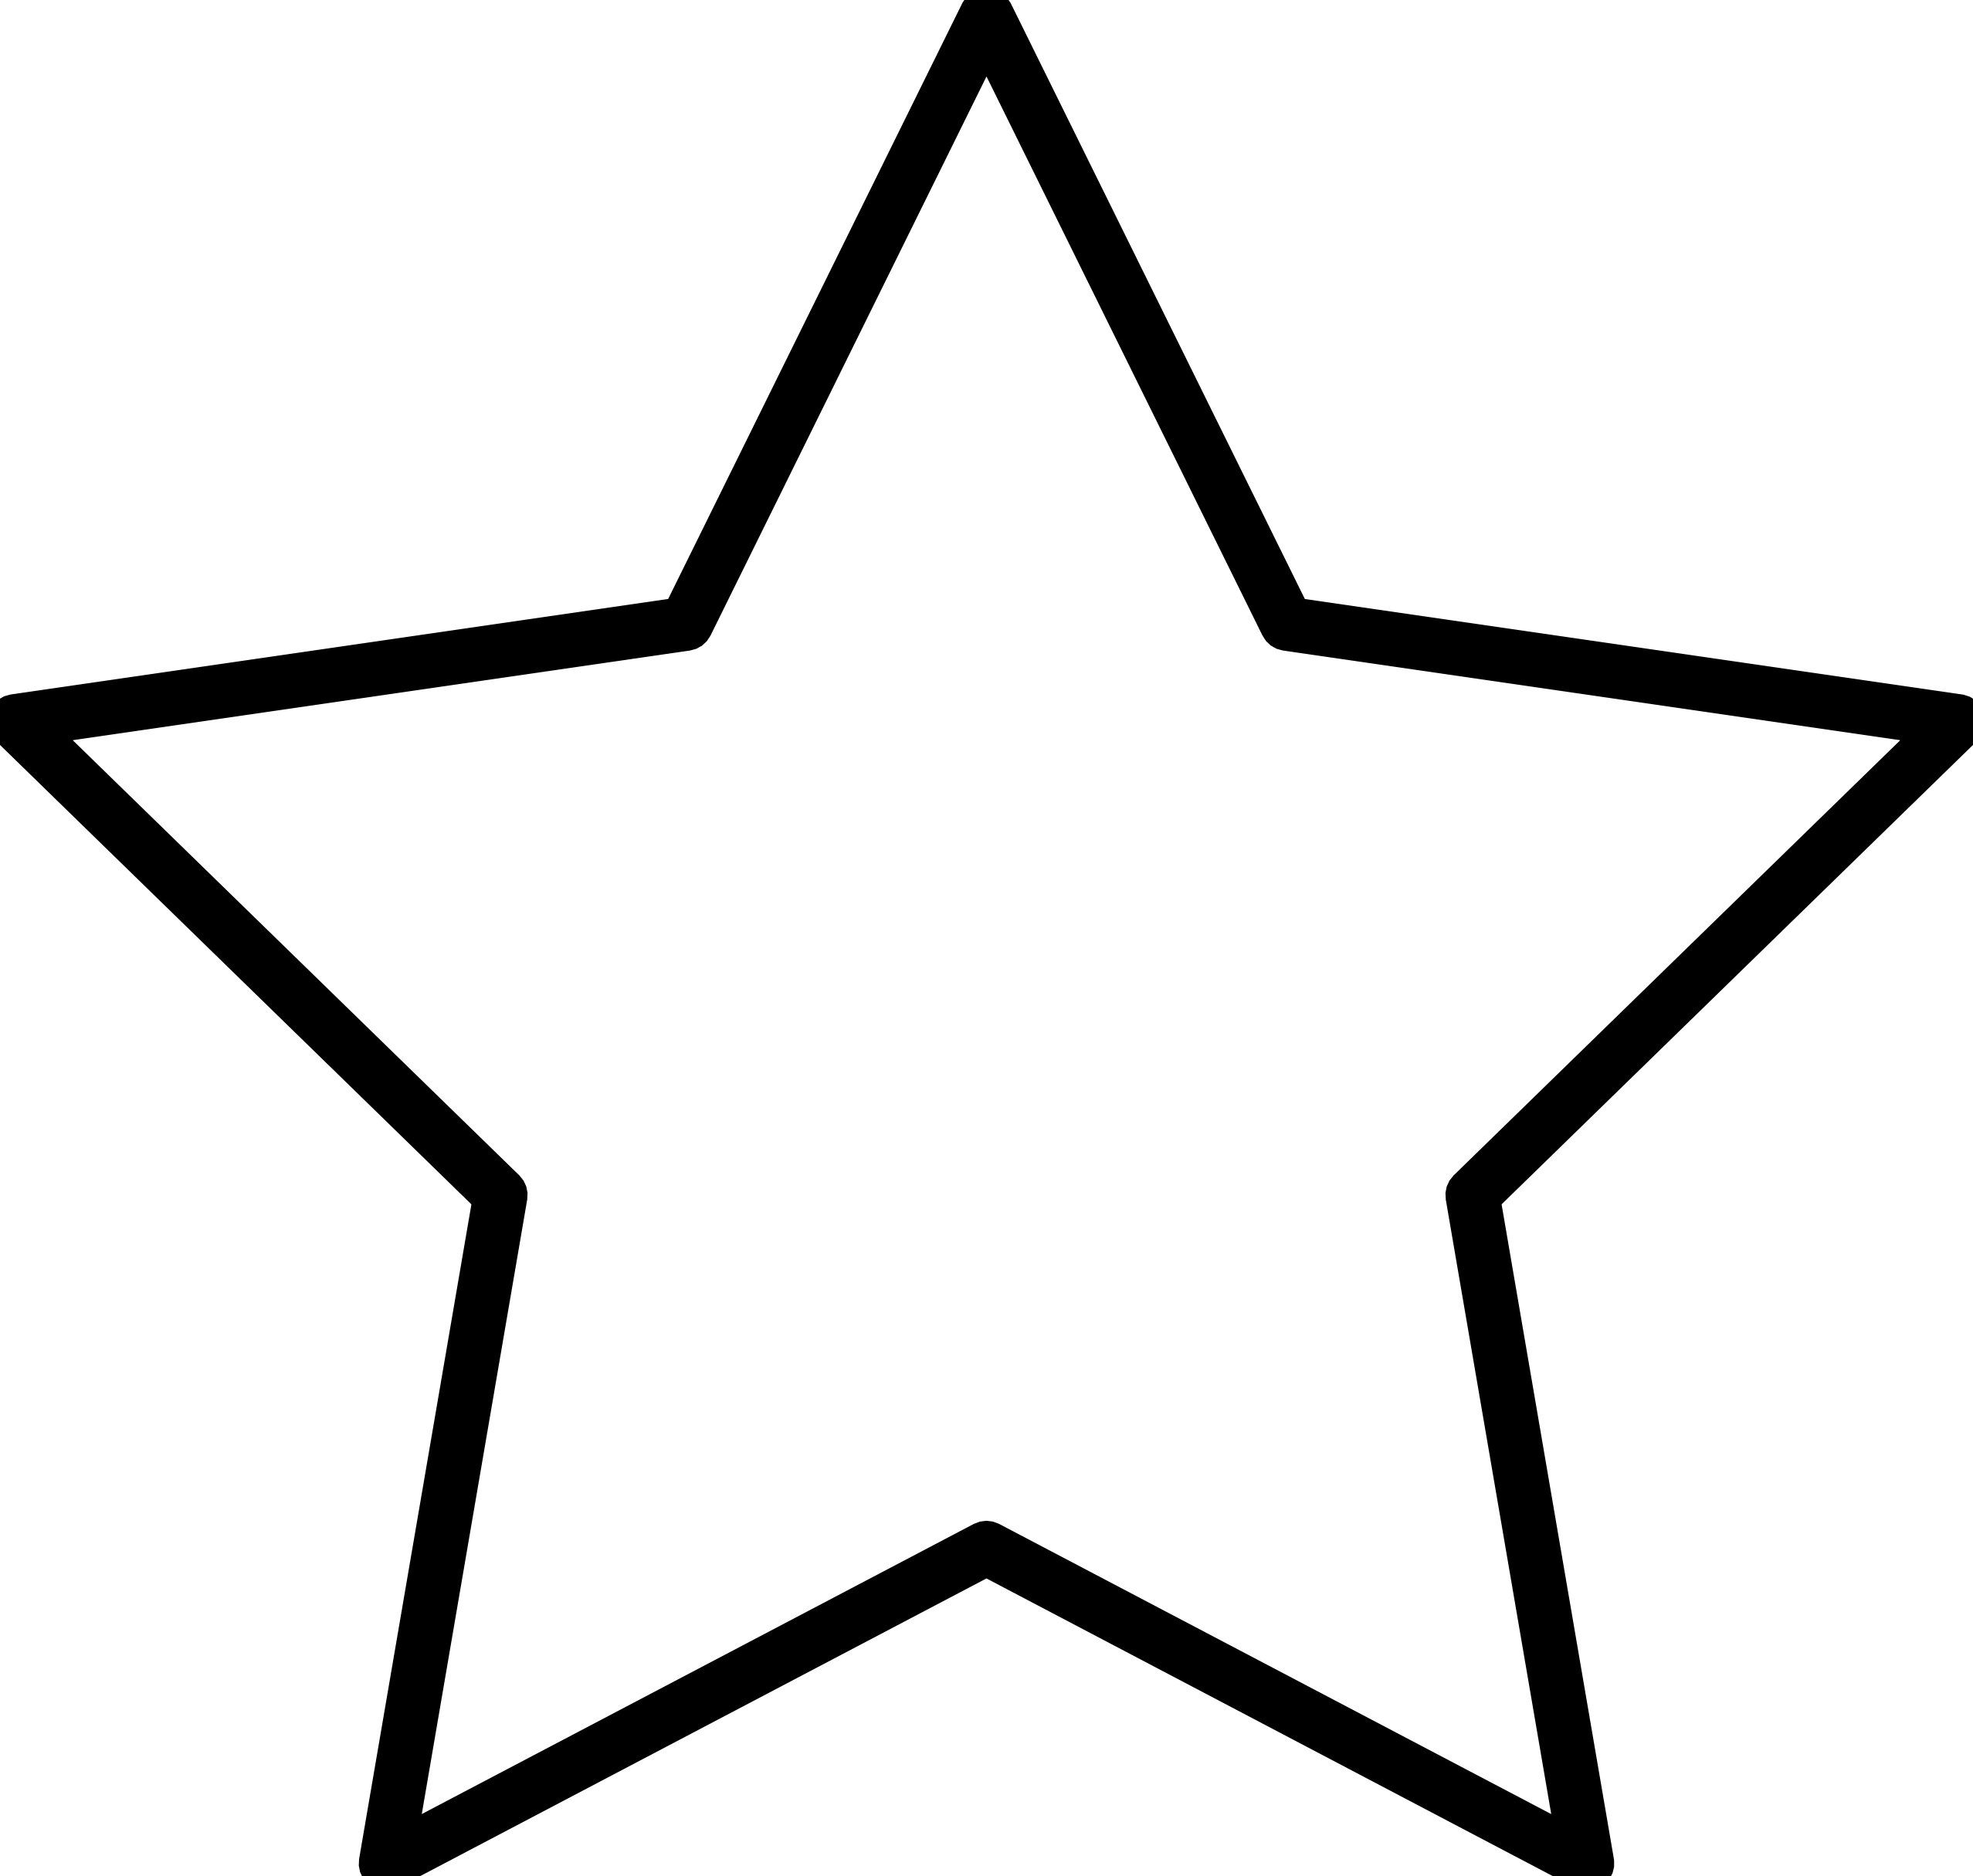 Star 20clipart 20black 20and 20white